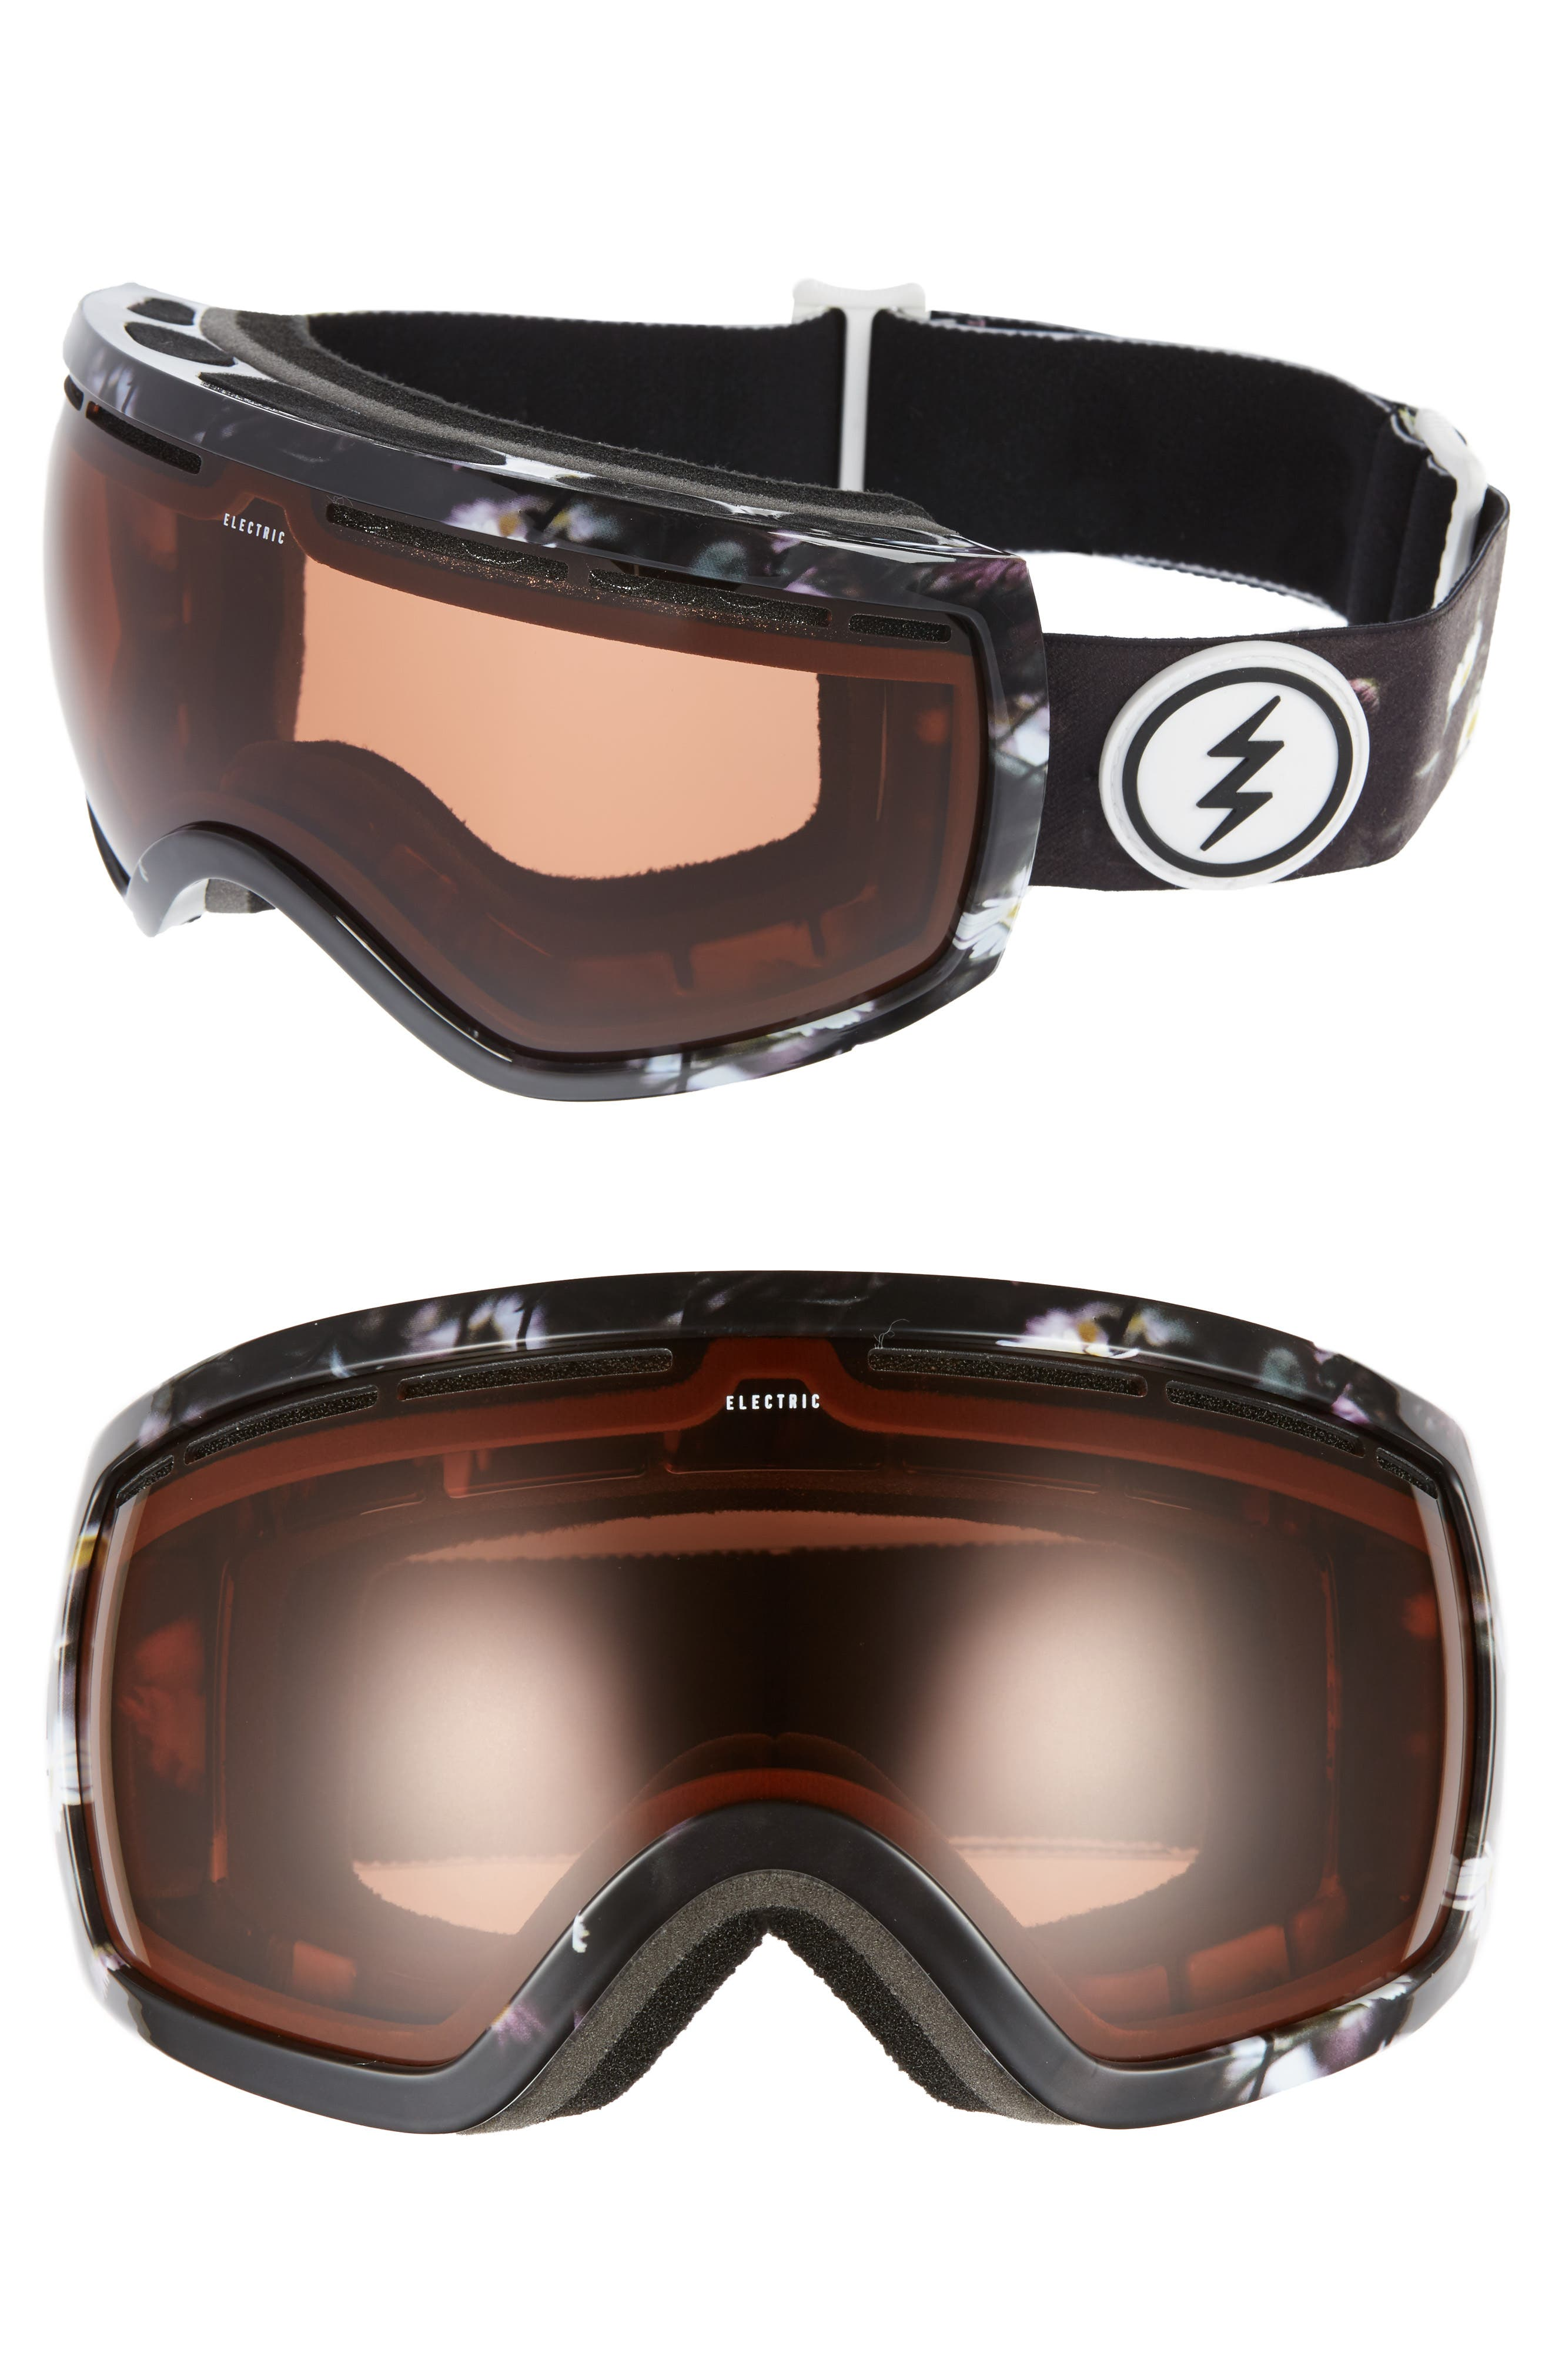 Main Image - ELECTRIC EG2.5 Snow Goggles